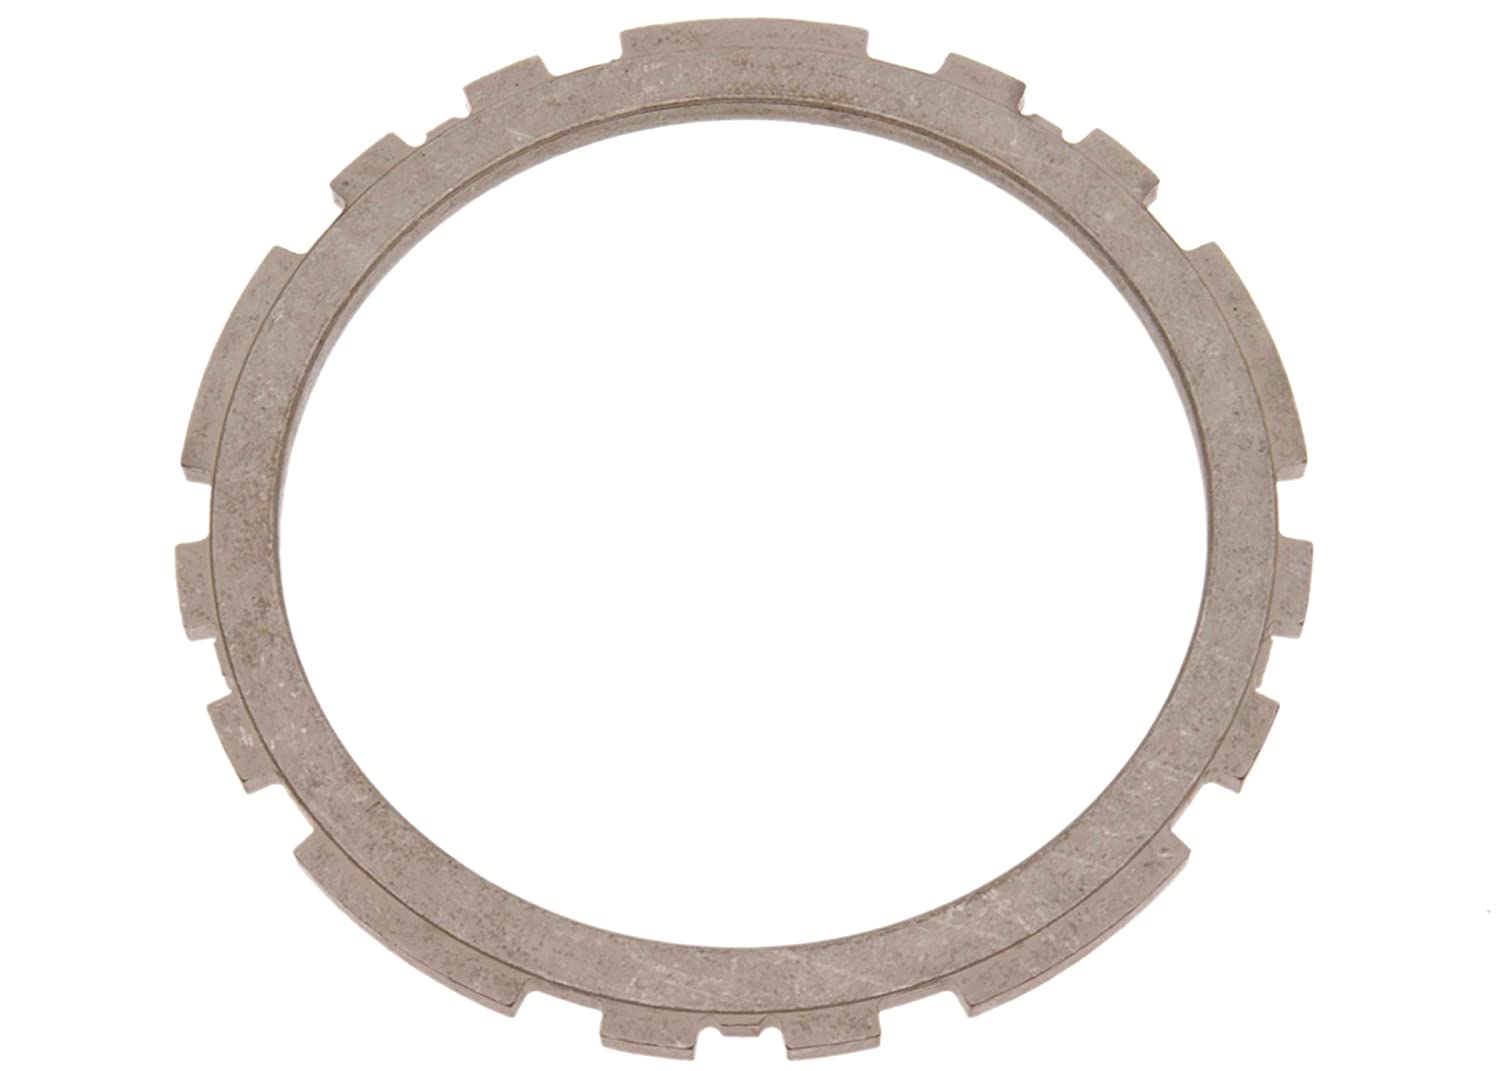 ACDelco 24212461 GM Original Equipment Automatic Transmission 3-4 Clutch Backing Plate